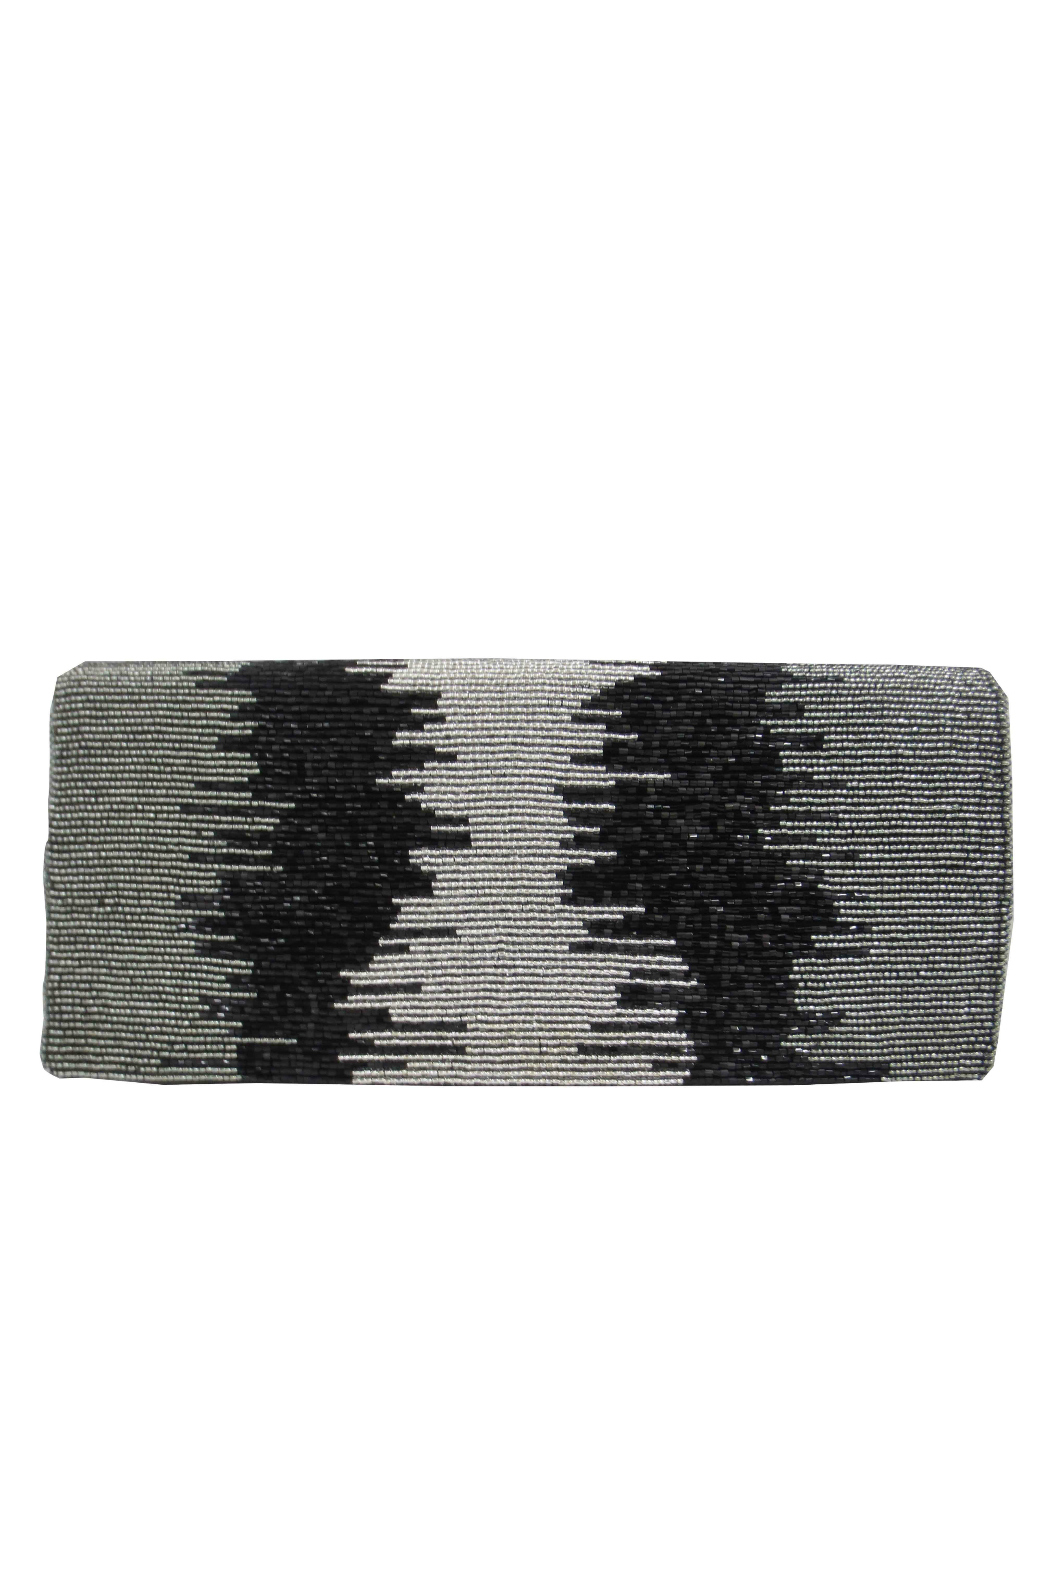 Sondra Roberts Ombred Beads Flap Clutch - Main Image